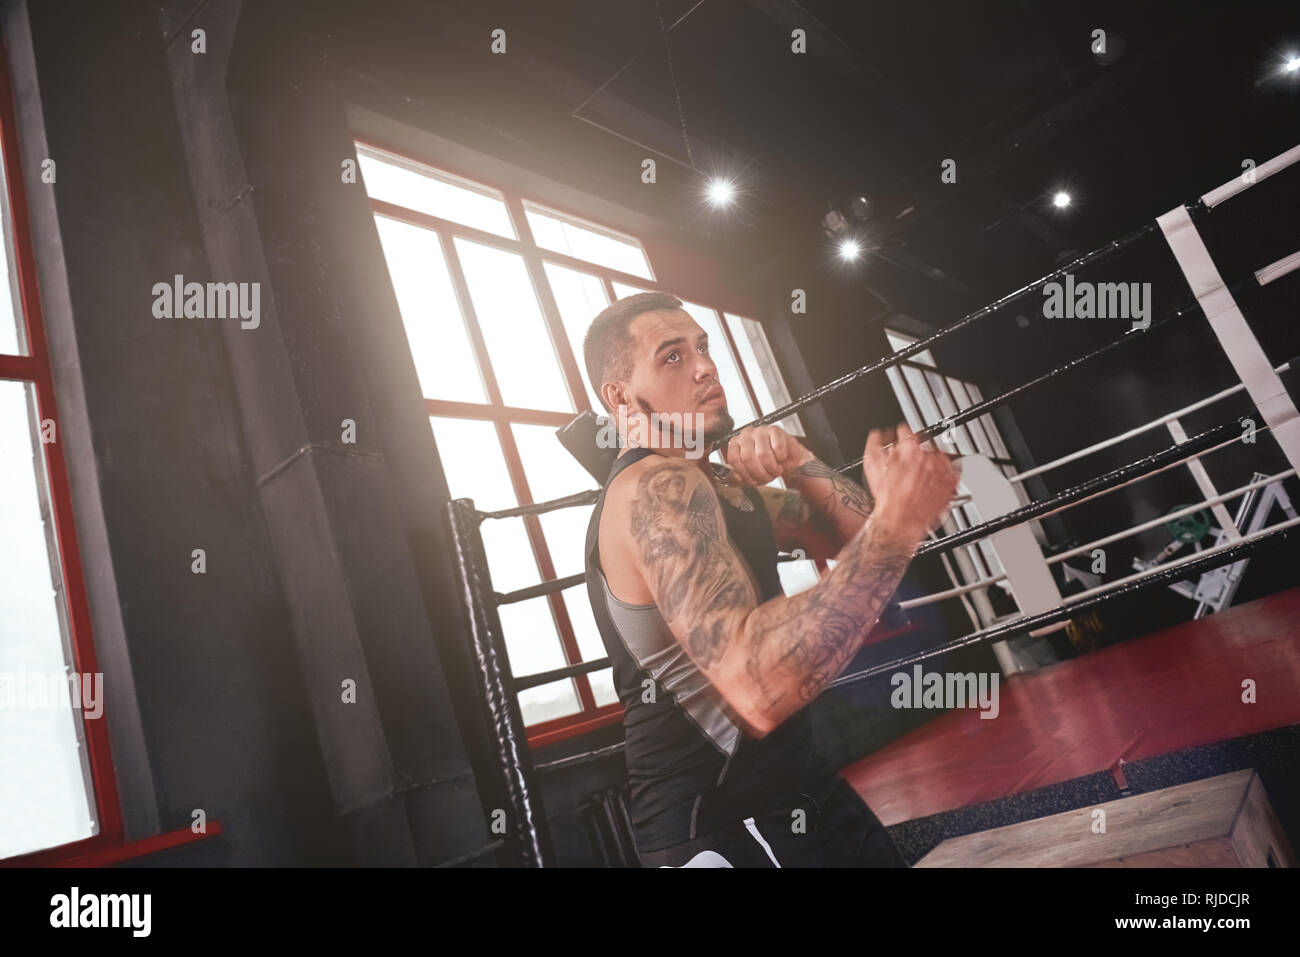 Muscular strong boxer mma fighter in sports clothing